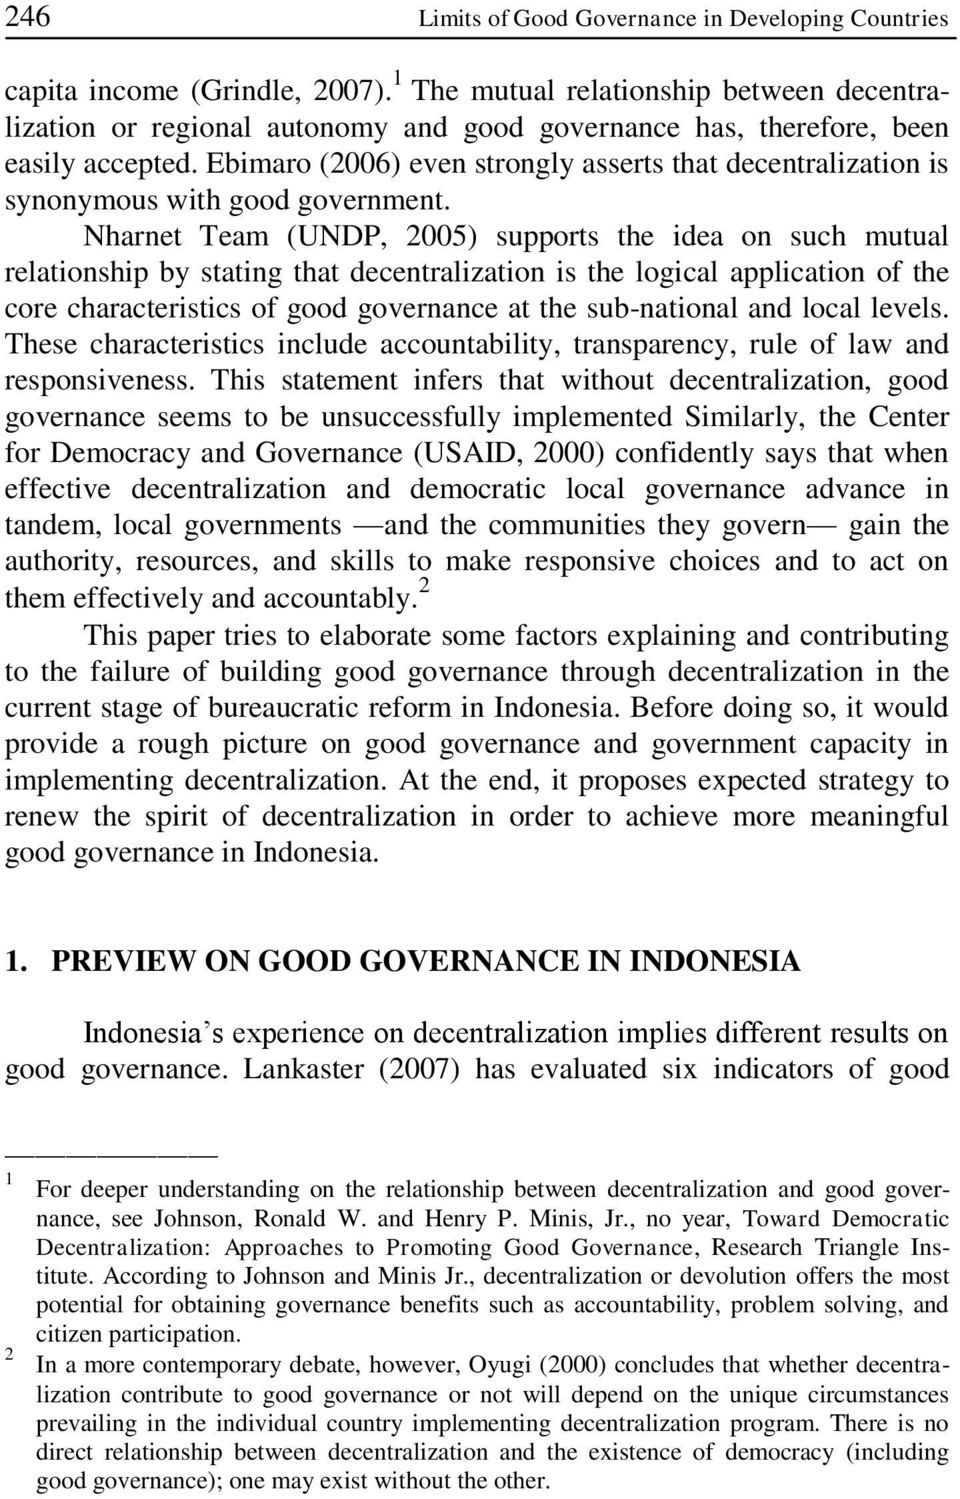 Ebimaro (2006) even strongly asserts that decentralization is synonymous with good government.